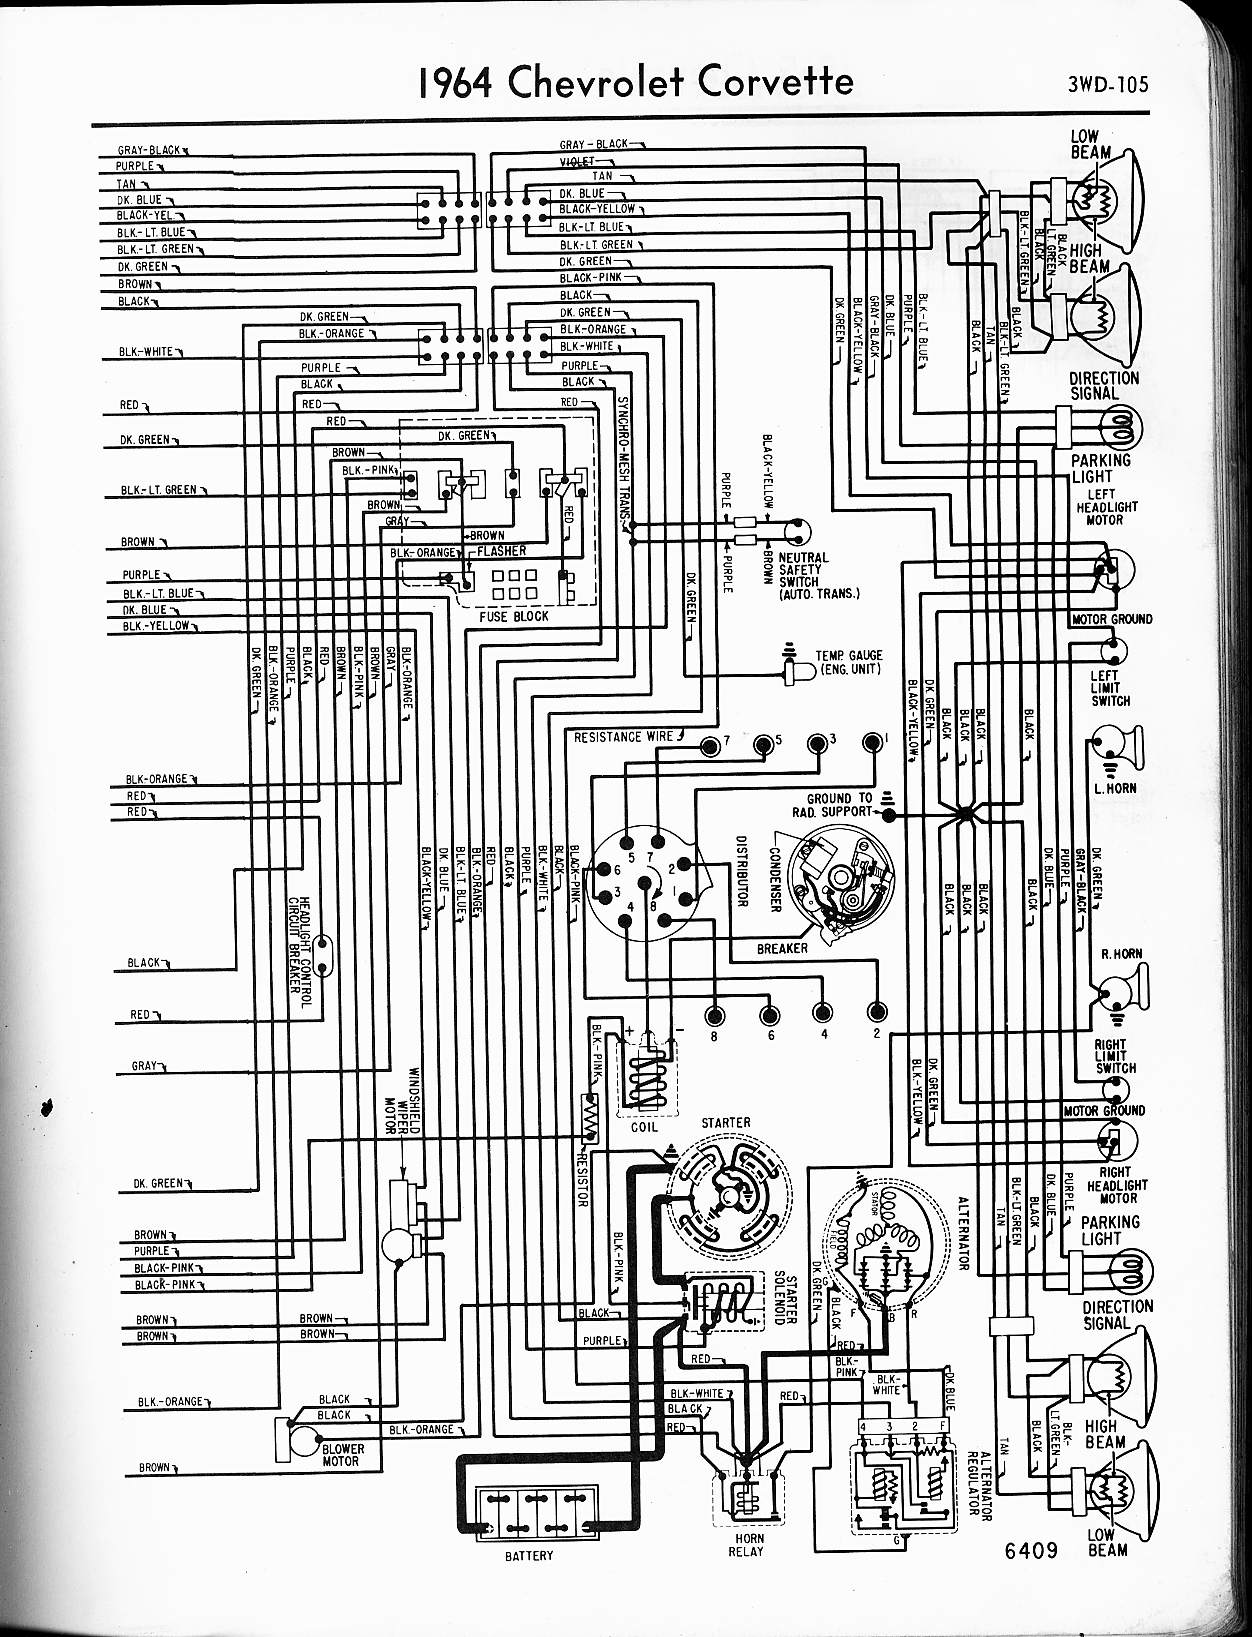 MWireChev64_3WD 105 57 65 chevy wiring diagrams 2000 C5 Corvette Wiring Diagram at fashall.co